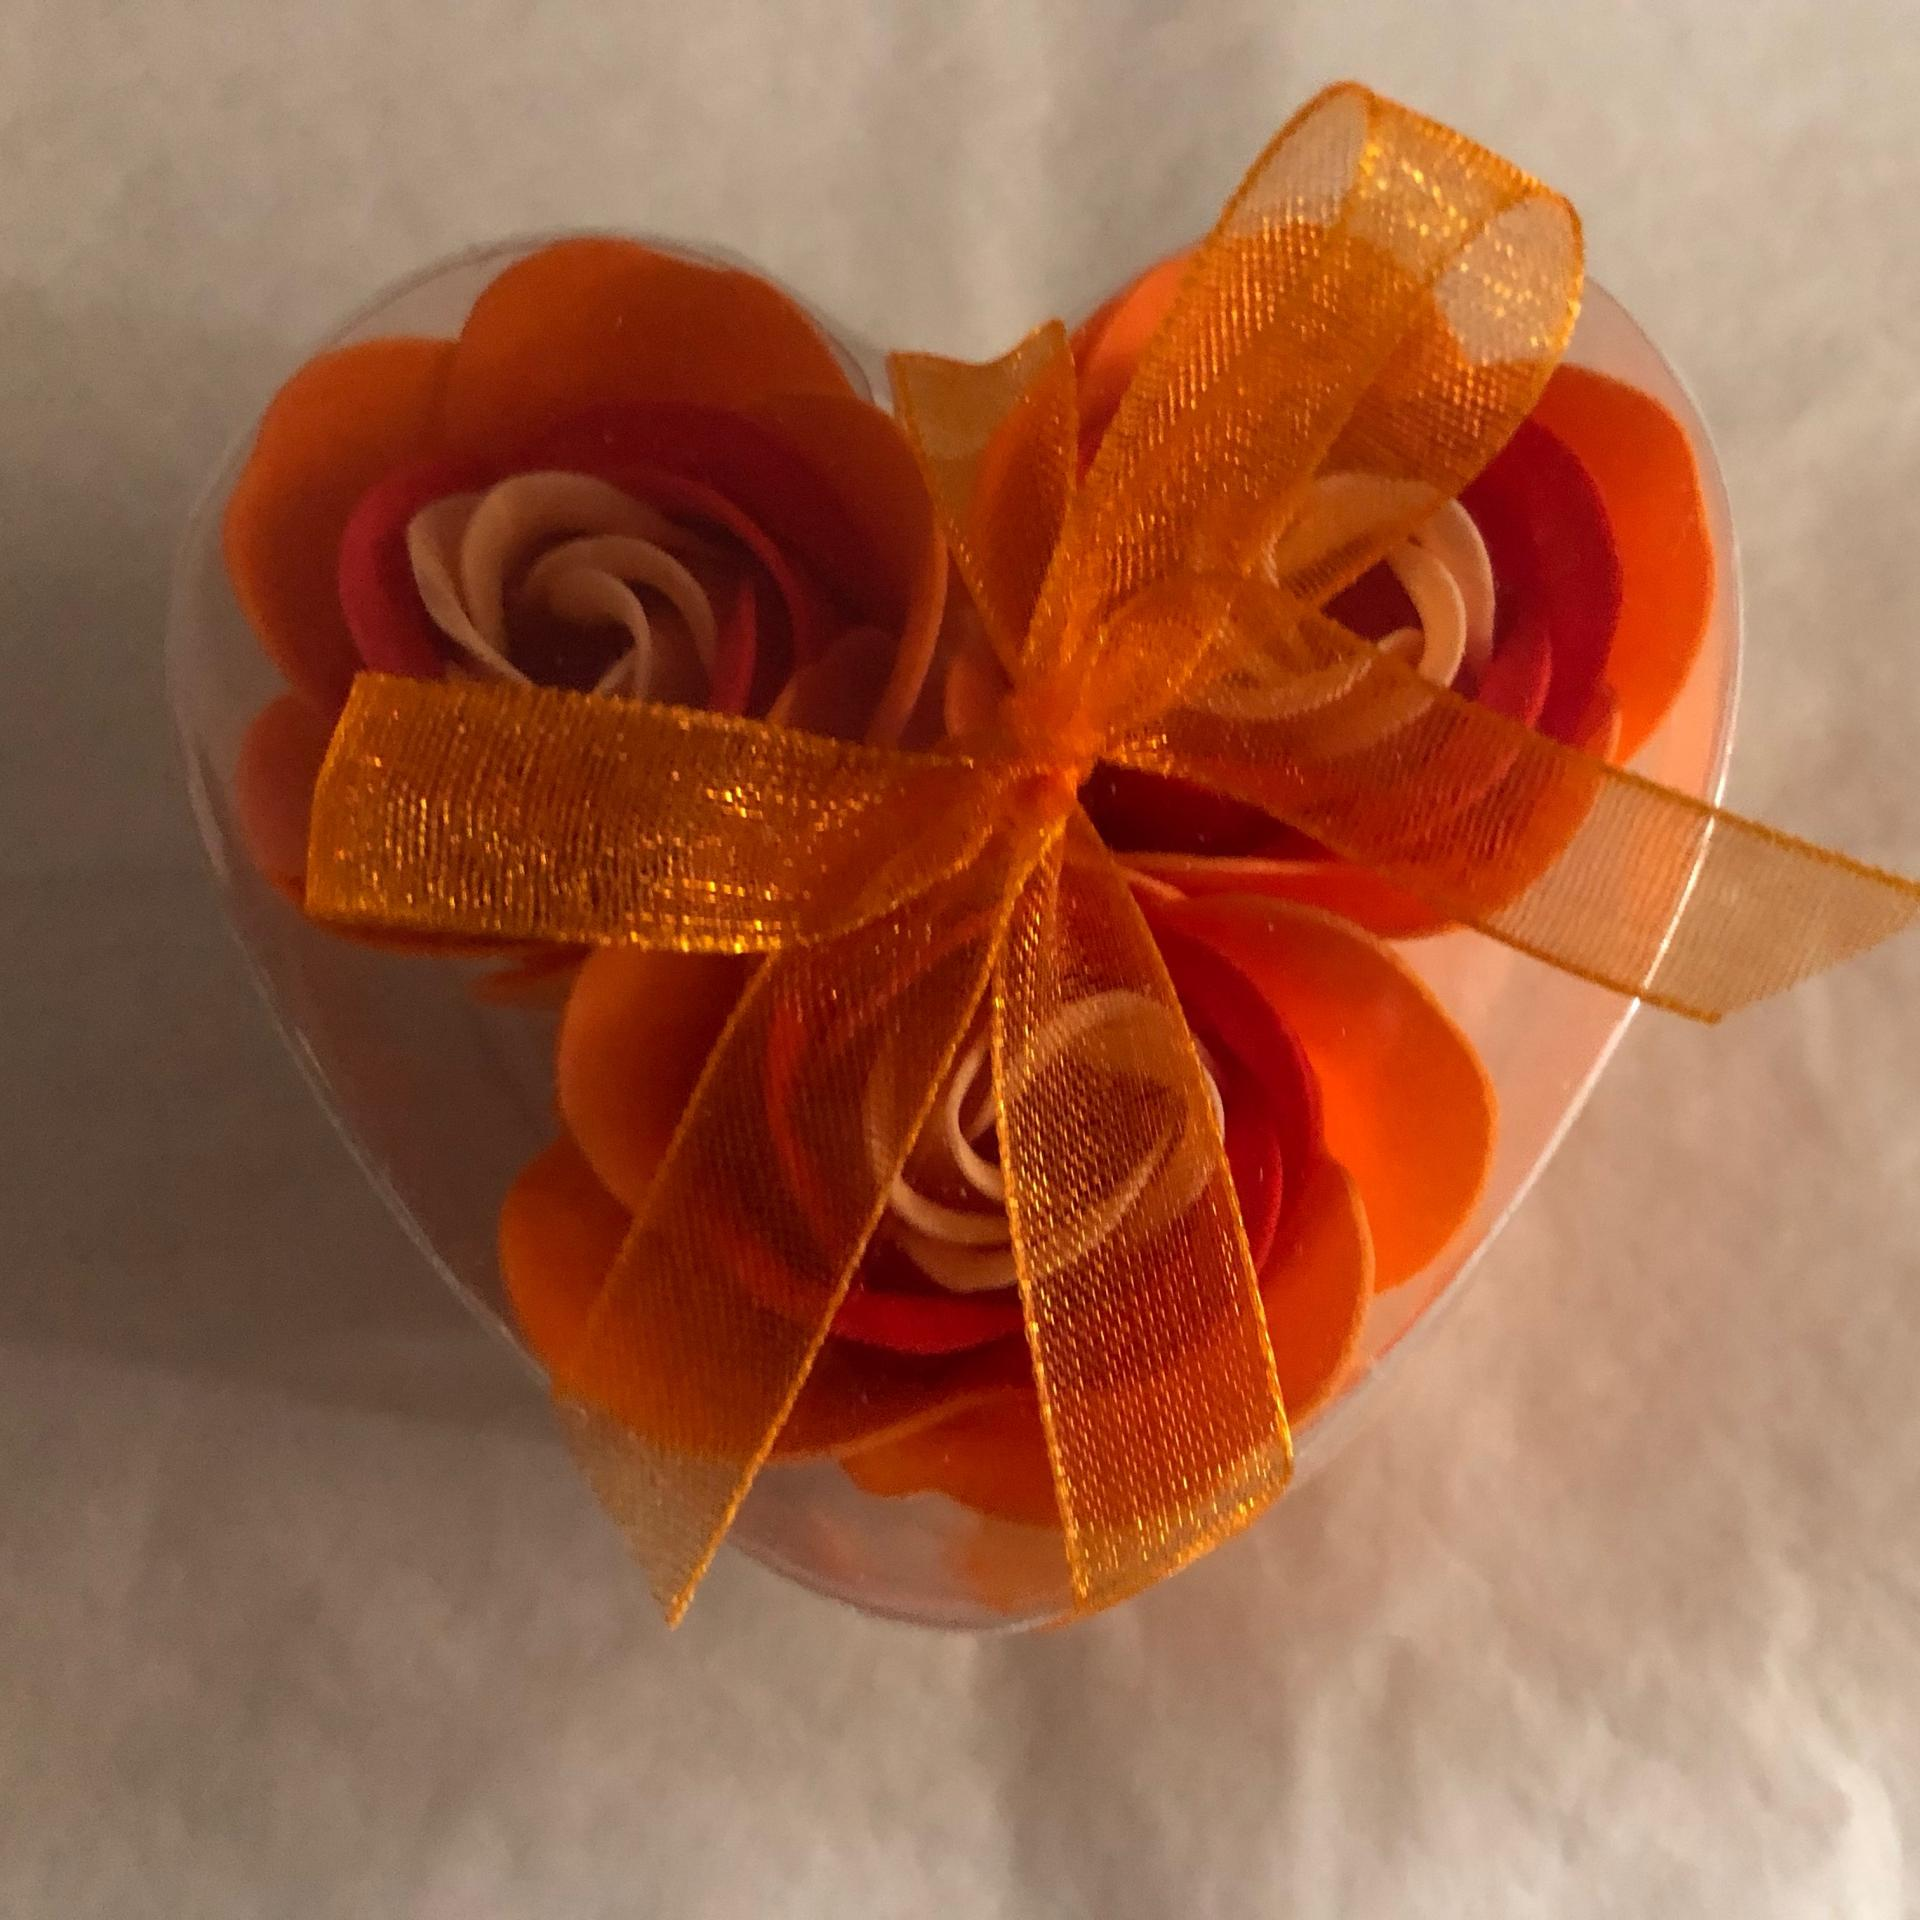 Boutons de rose x3 orange